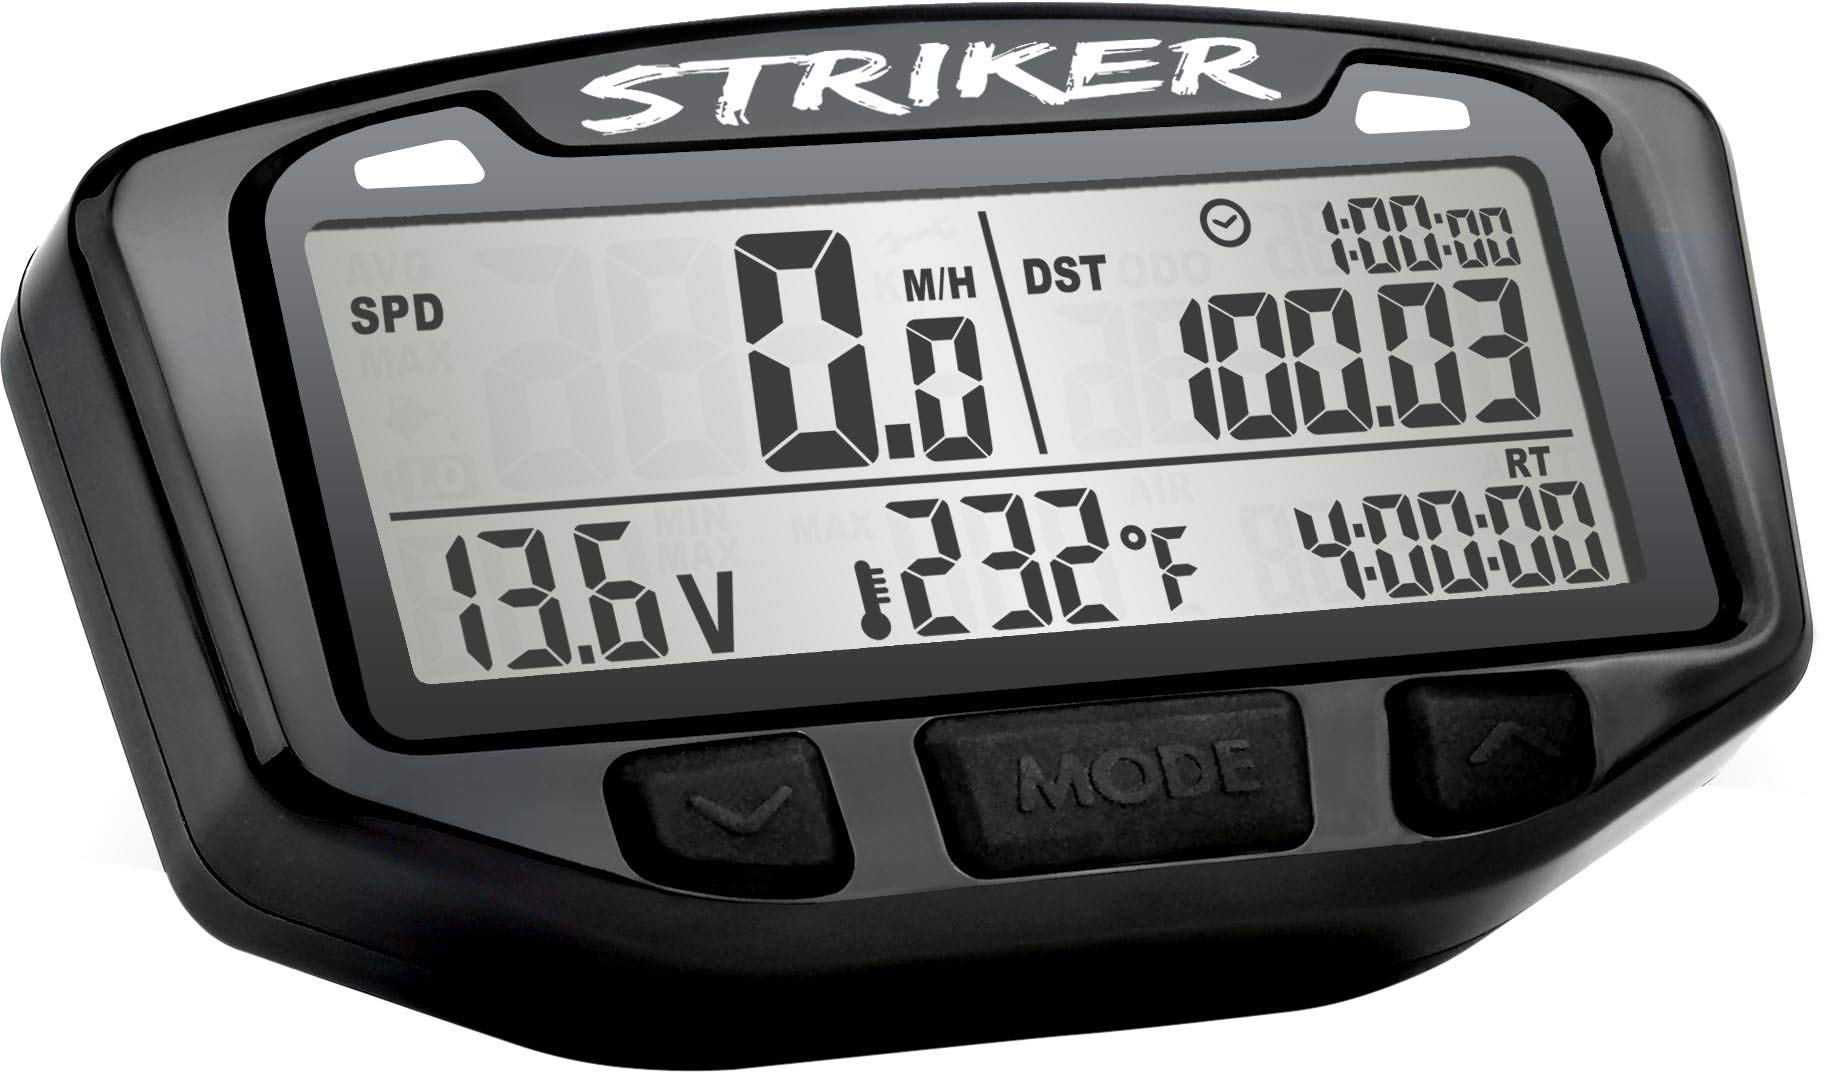 Trail Tech 712-117 Black Striker Speedometer Digital Gauge Kit with Volt Meter by Trail Tech